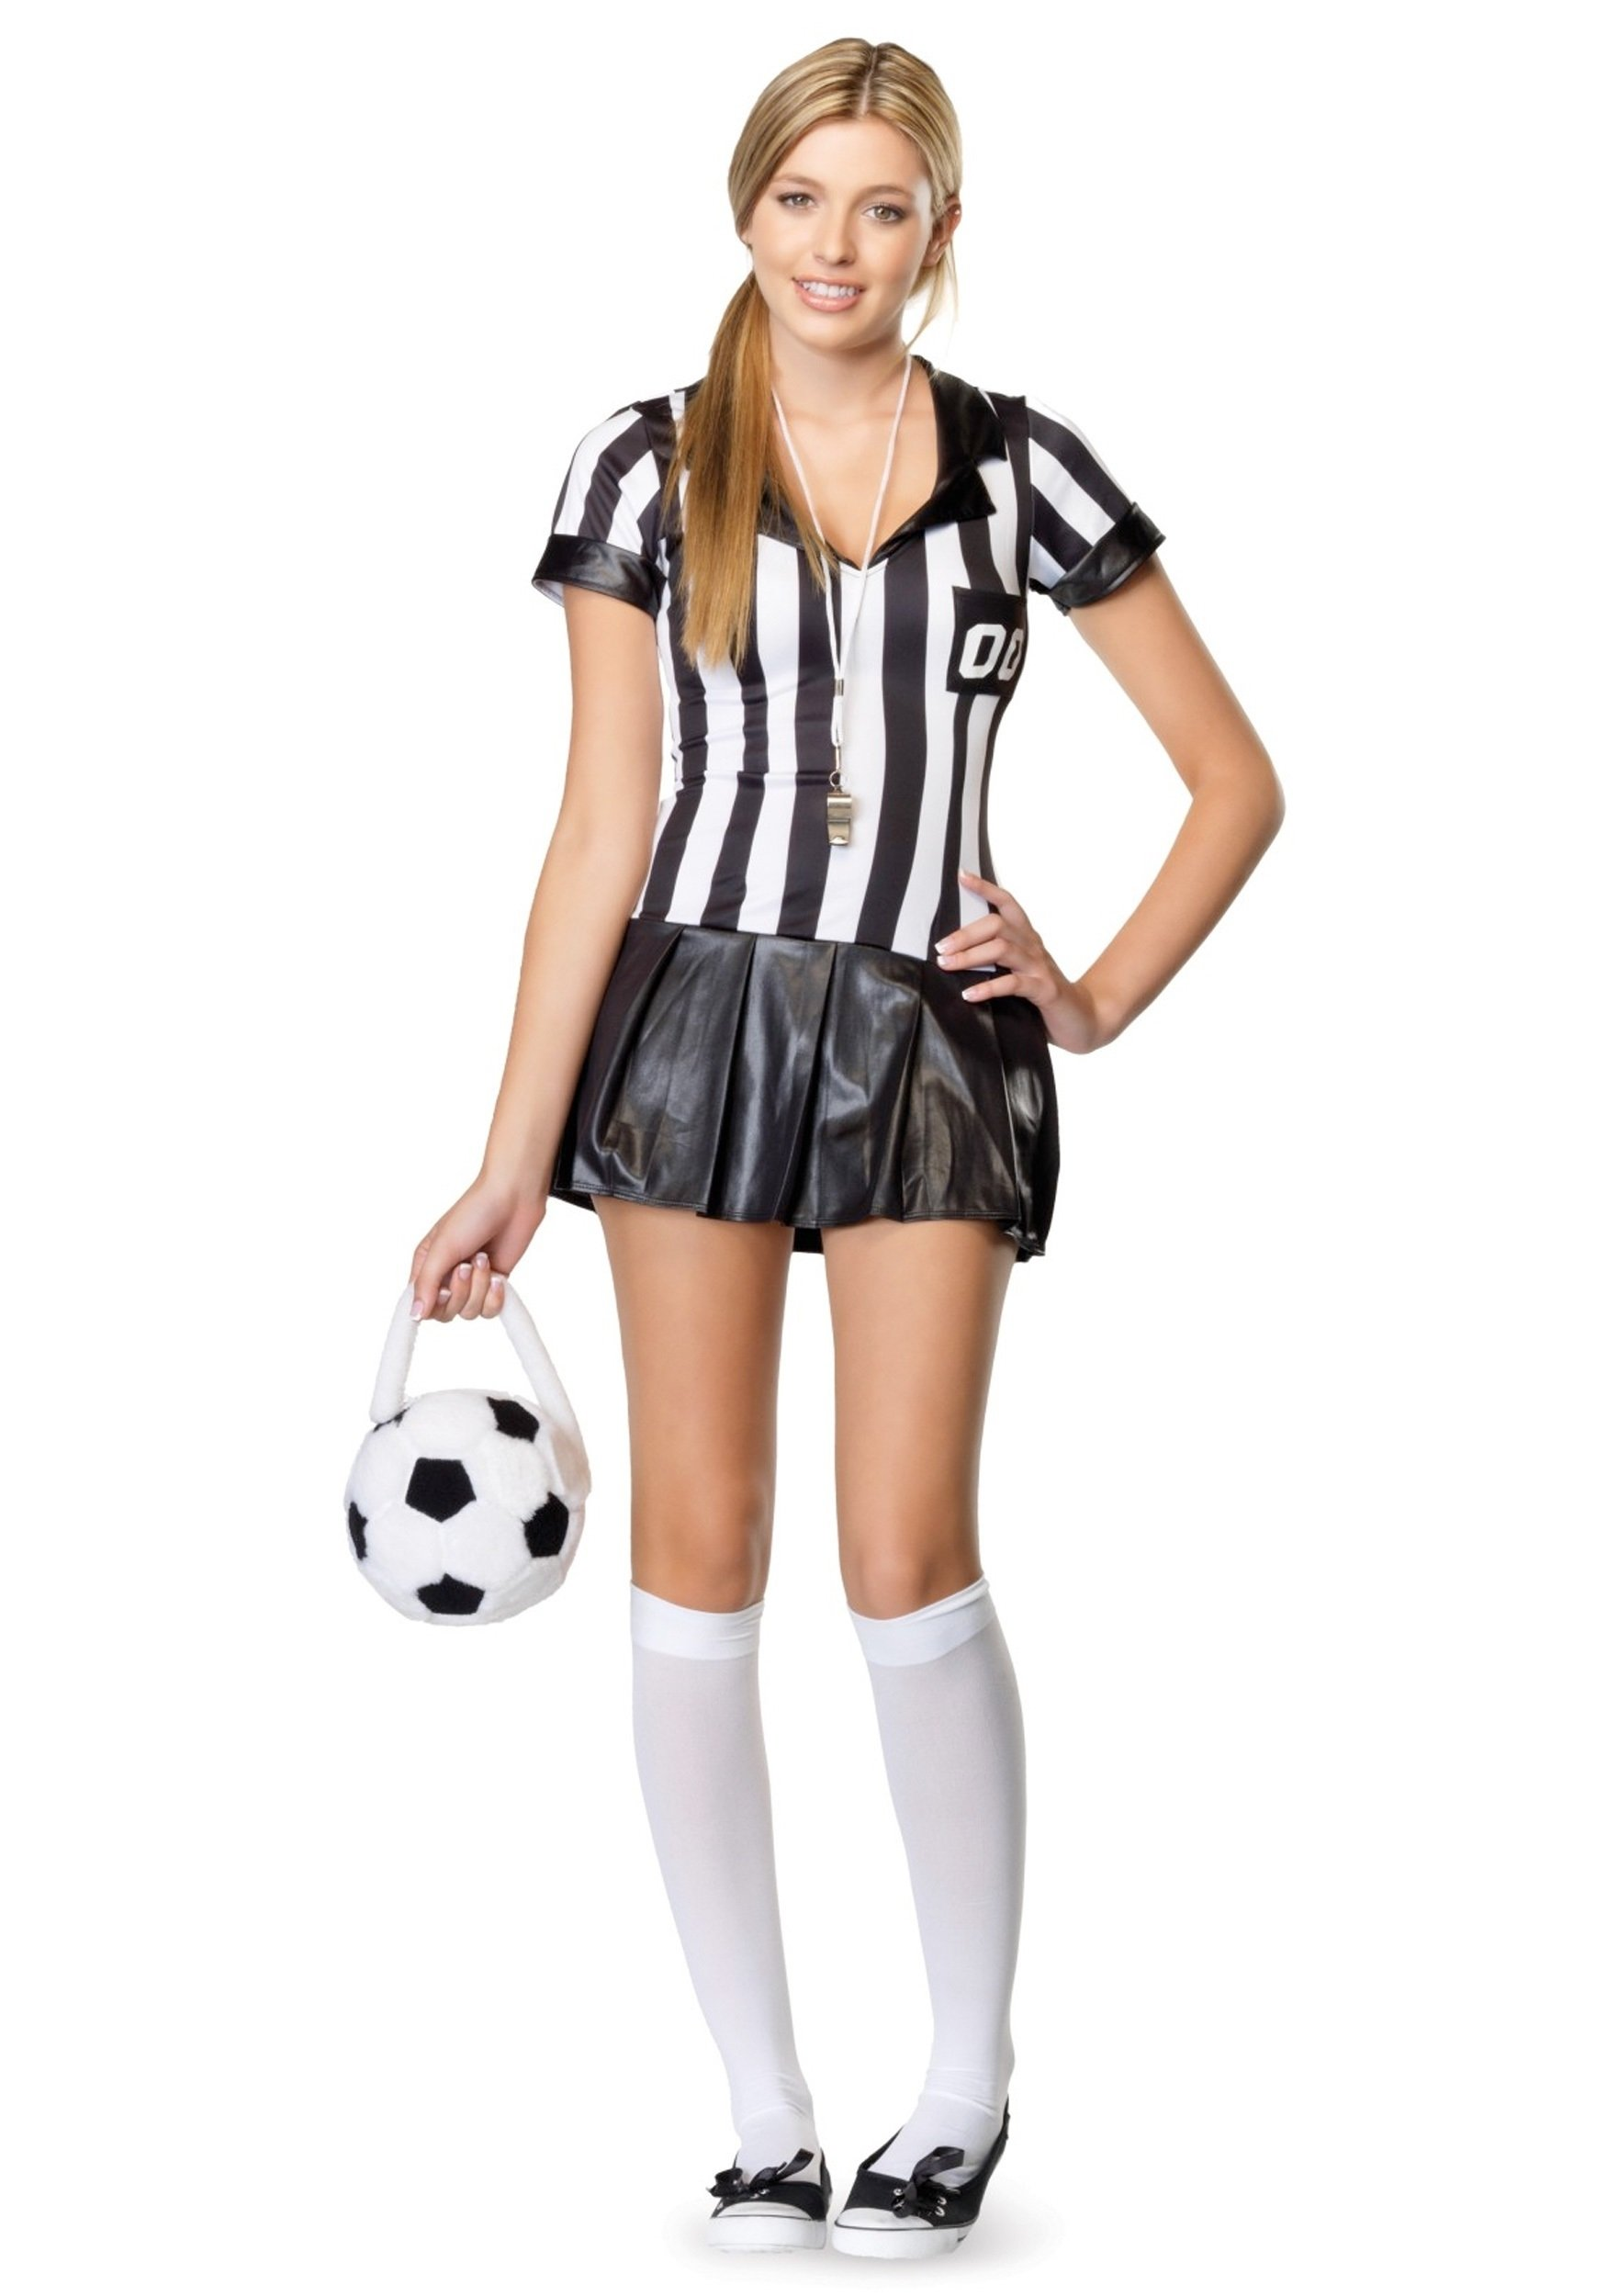 10 Gorgeous Cute Halloween Ideas For Teenage Girls cuteteencostumes home costume ideas sports costumes referee 3 2020